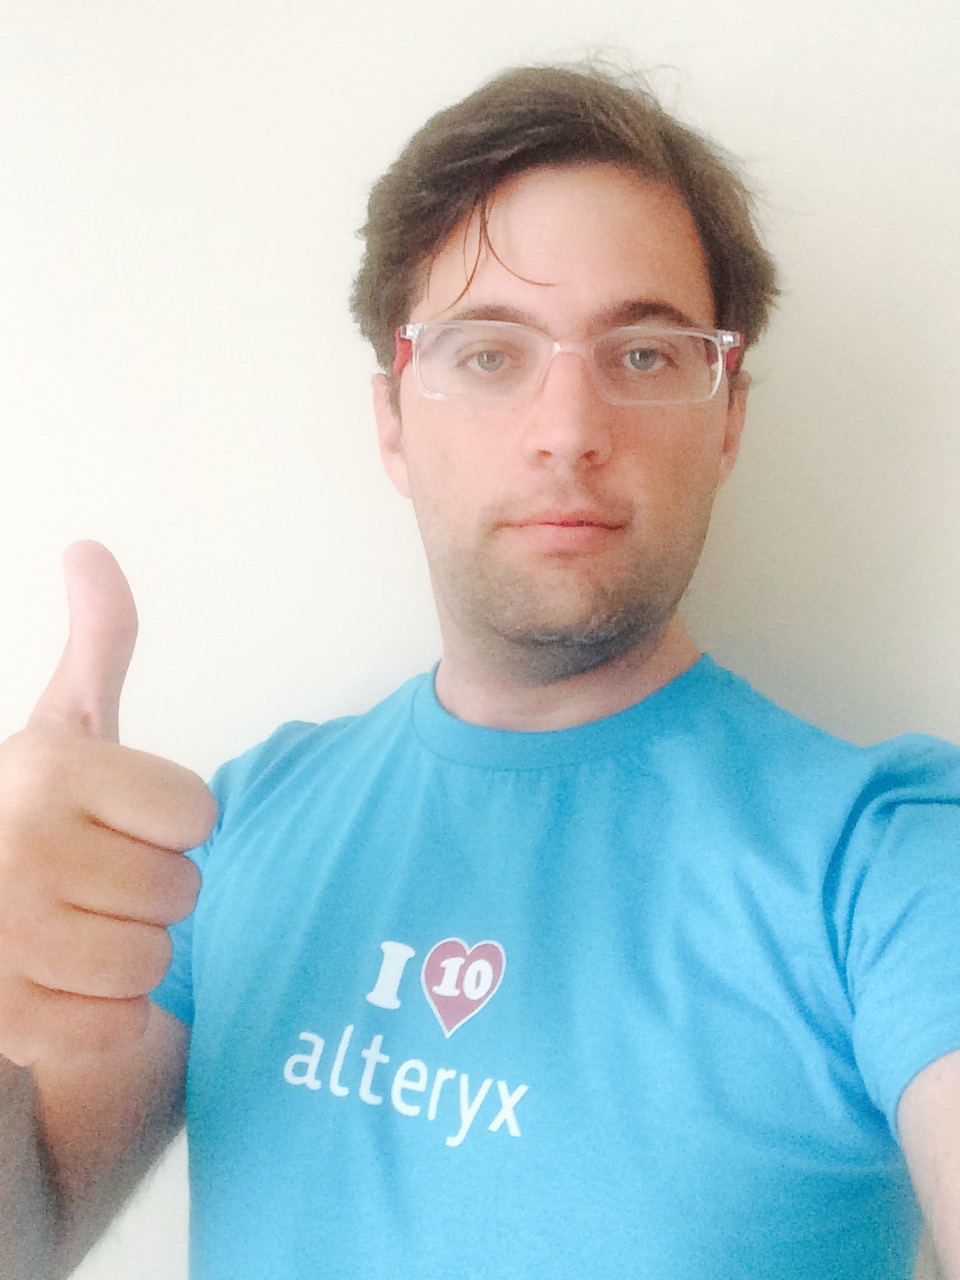 Alteryx T-shirt.jpg